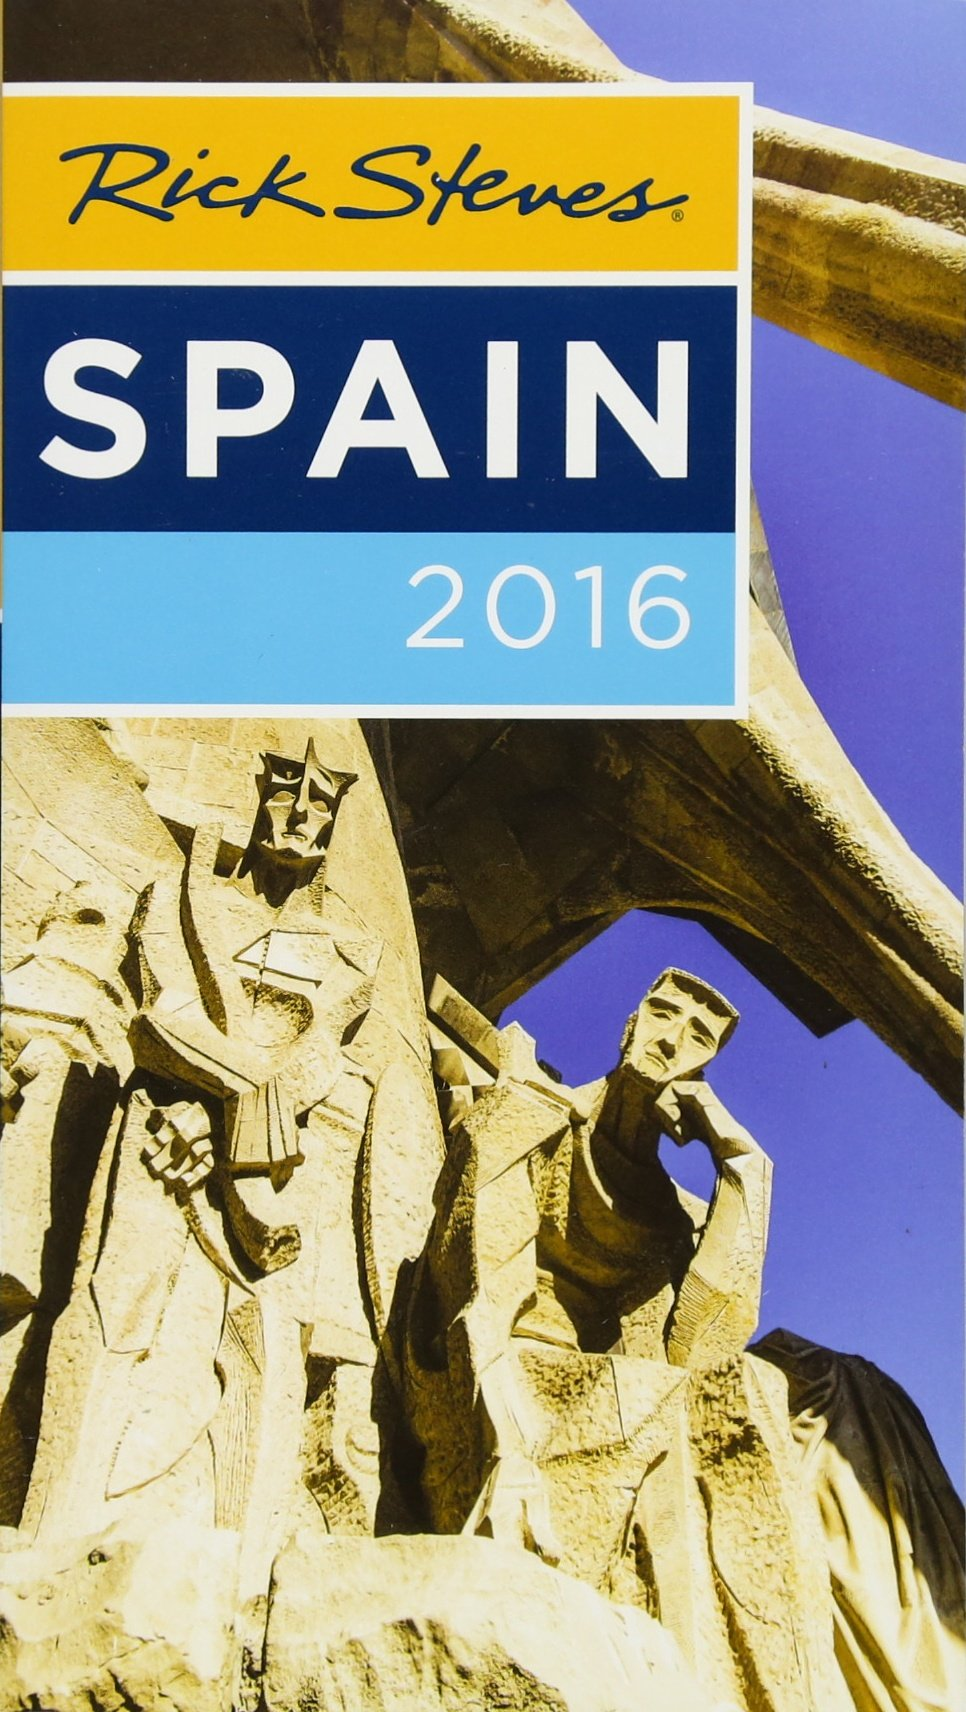 Rick Steves Spain 2016 product image